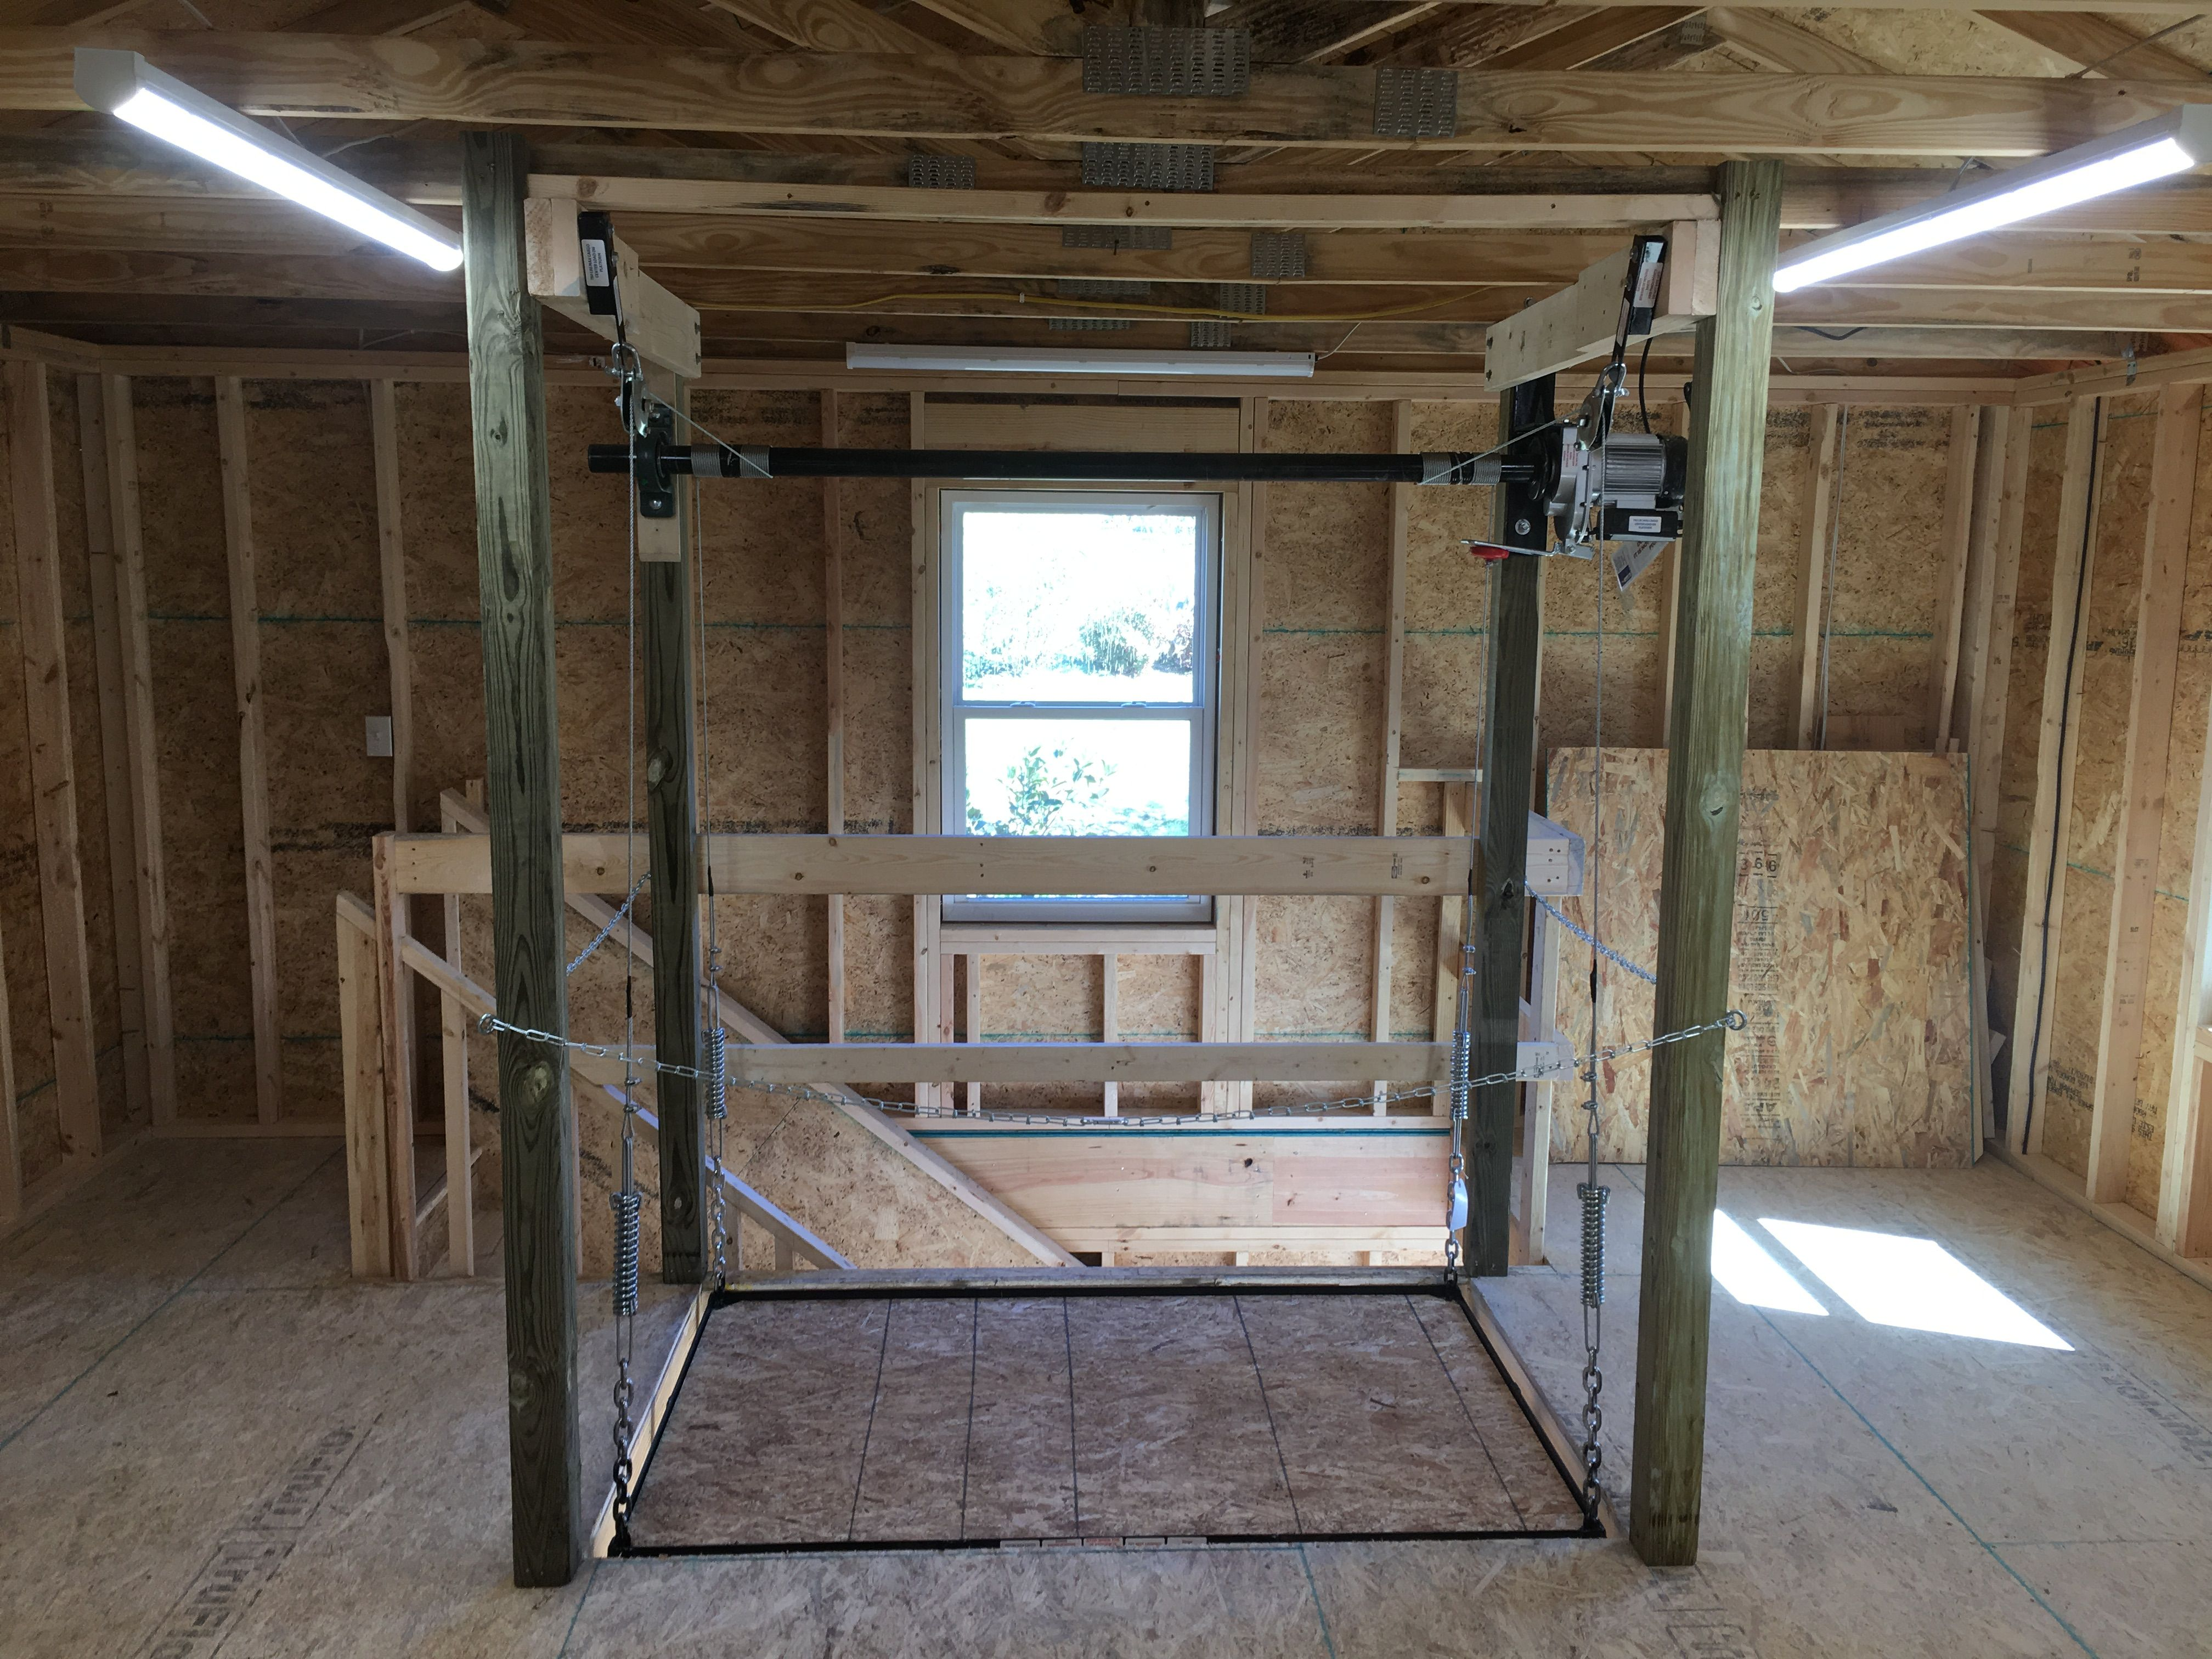 The Attic Lift Is A Garage Lift System That Is Motorized Designed